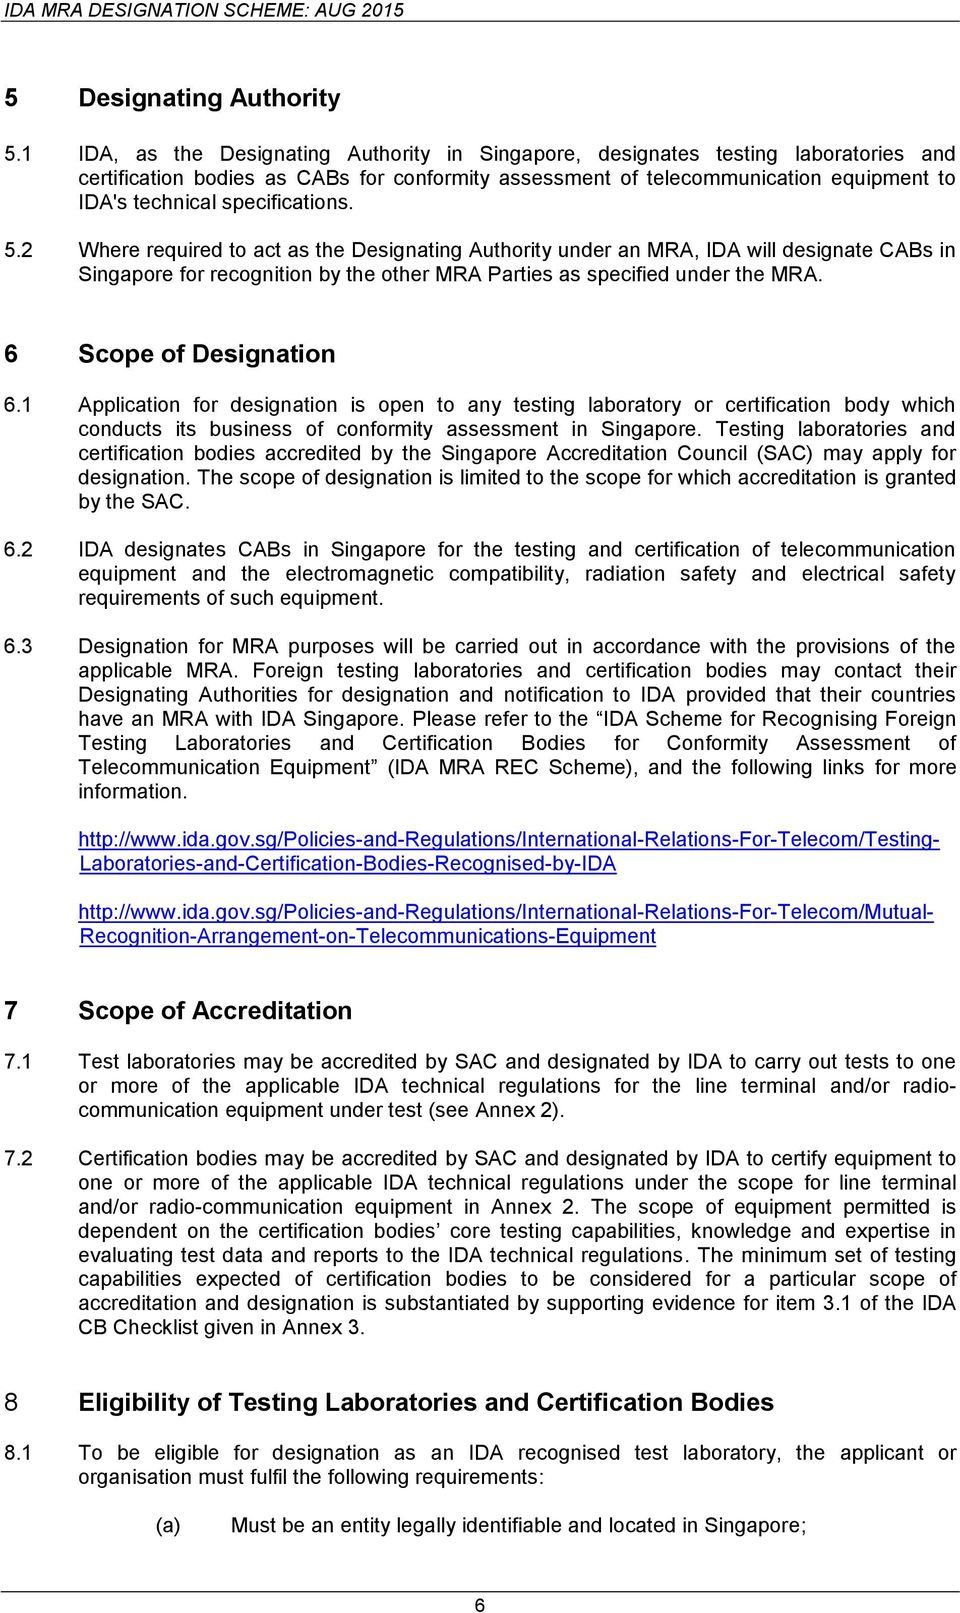 specifications. 5.2 Where required to act as the Designating Authority under an MRA, IDA will designate CABs in Singapore for recognition by the other MRA Parties as specified under the MRA.